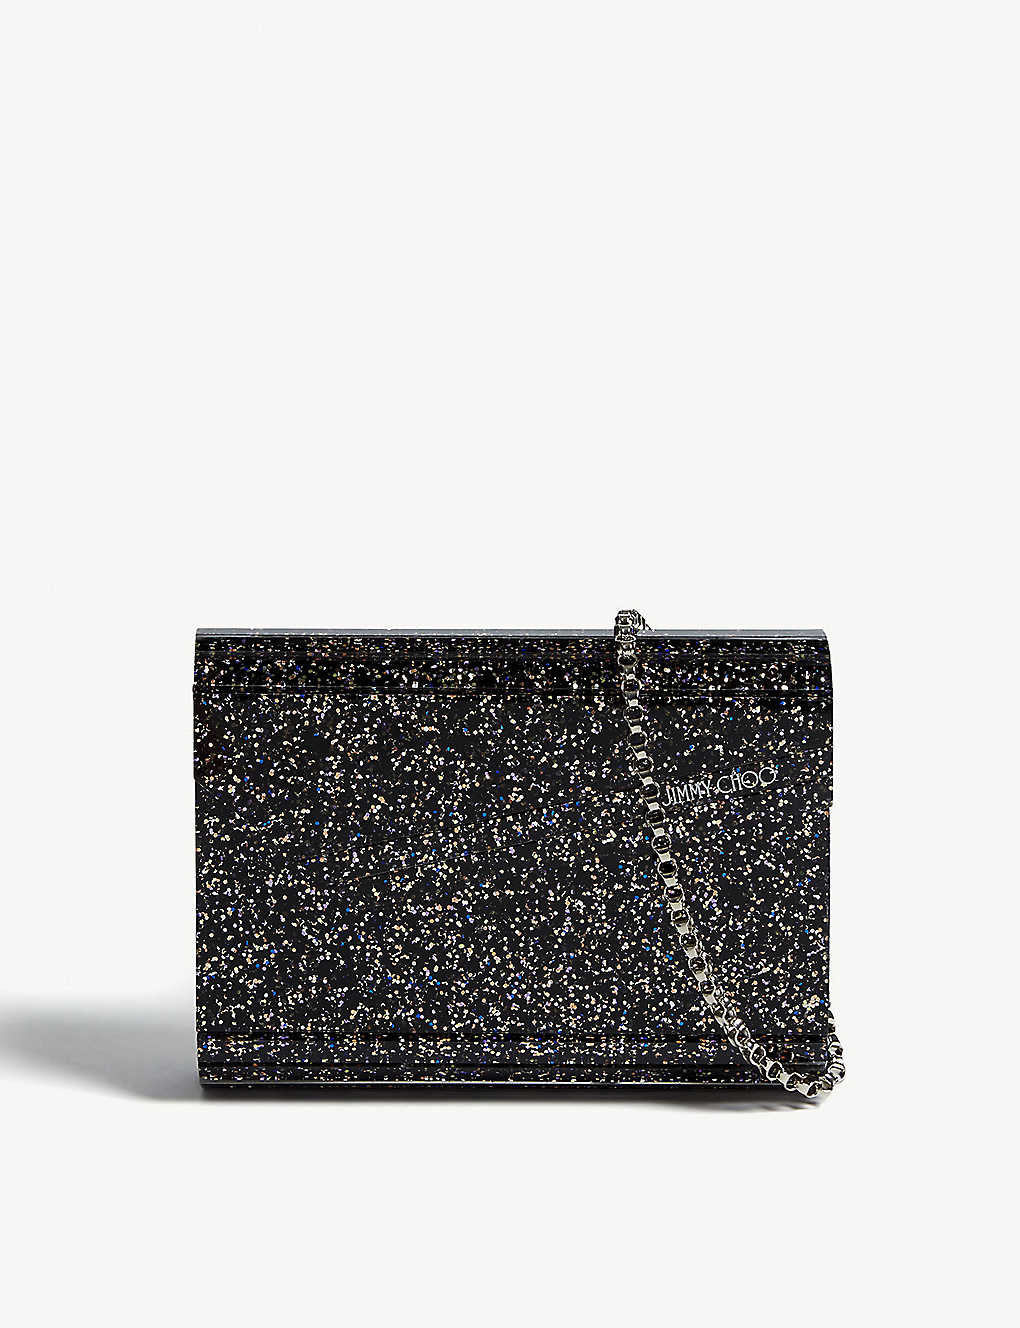 3641c7271b7 JIMMY CHOO - Candy glitter acrylic clutch bag | Selfridges.com